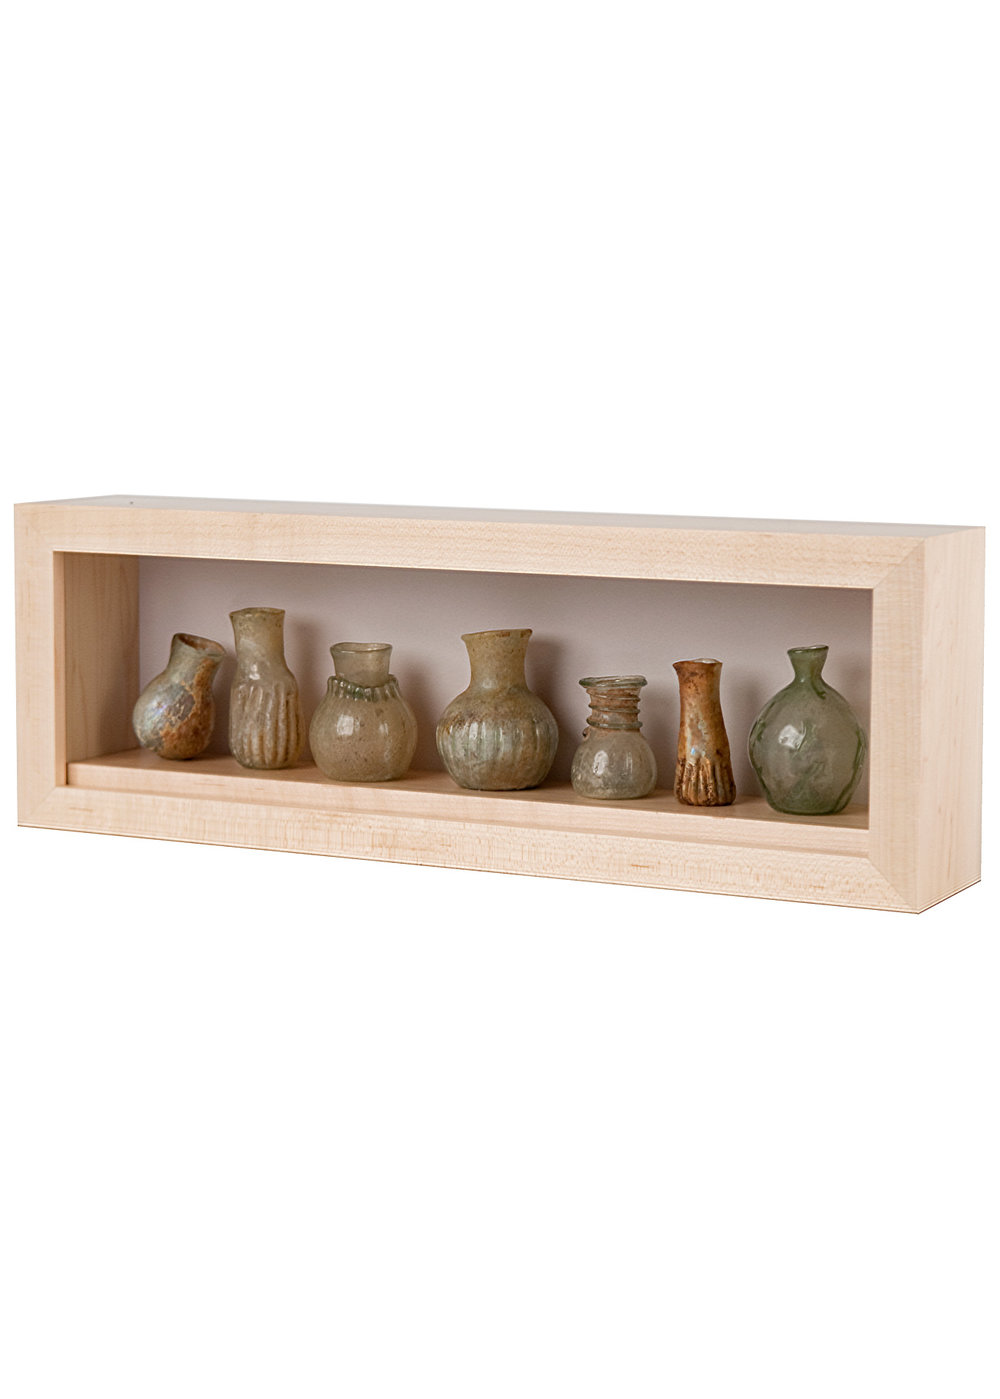 Vase Shadow Box